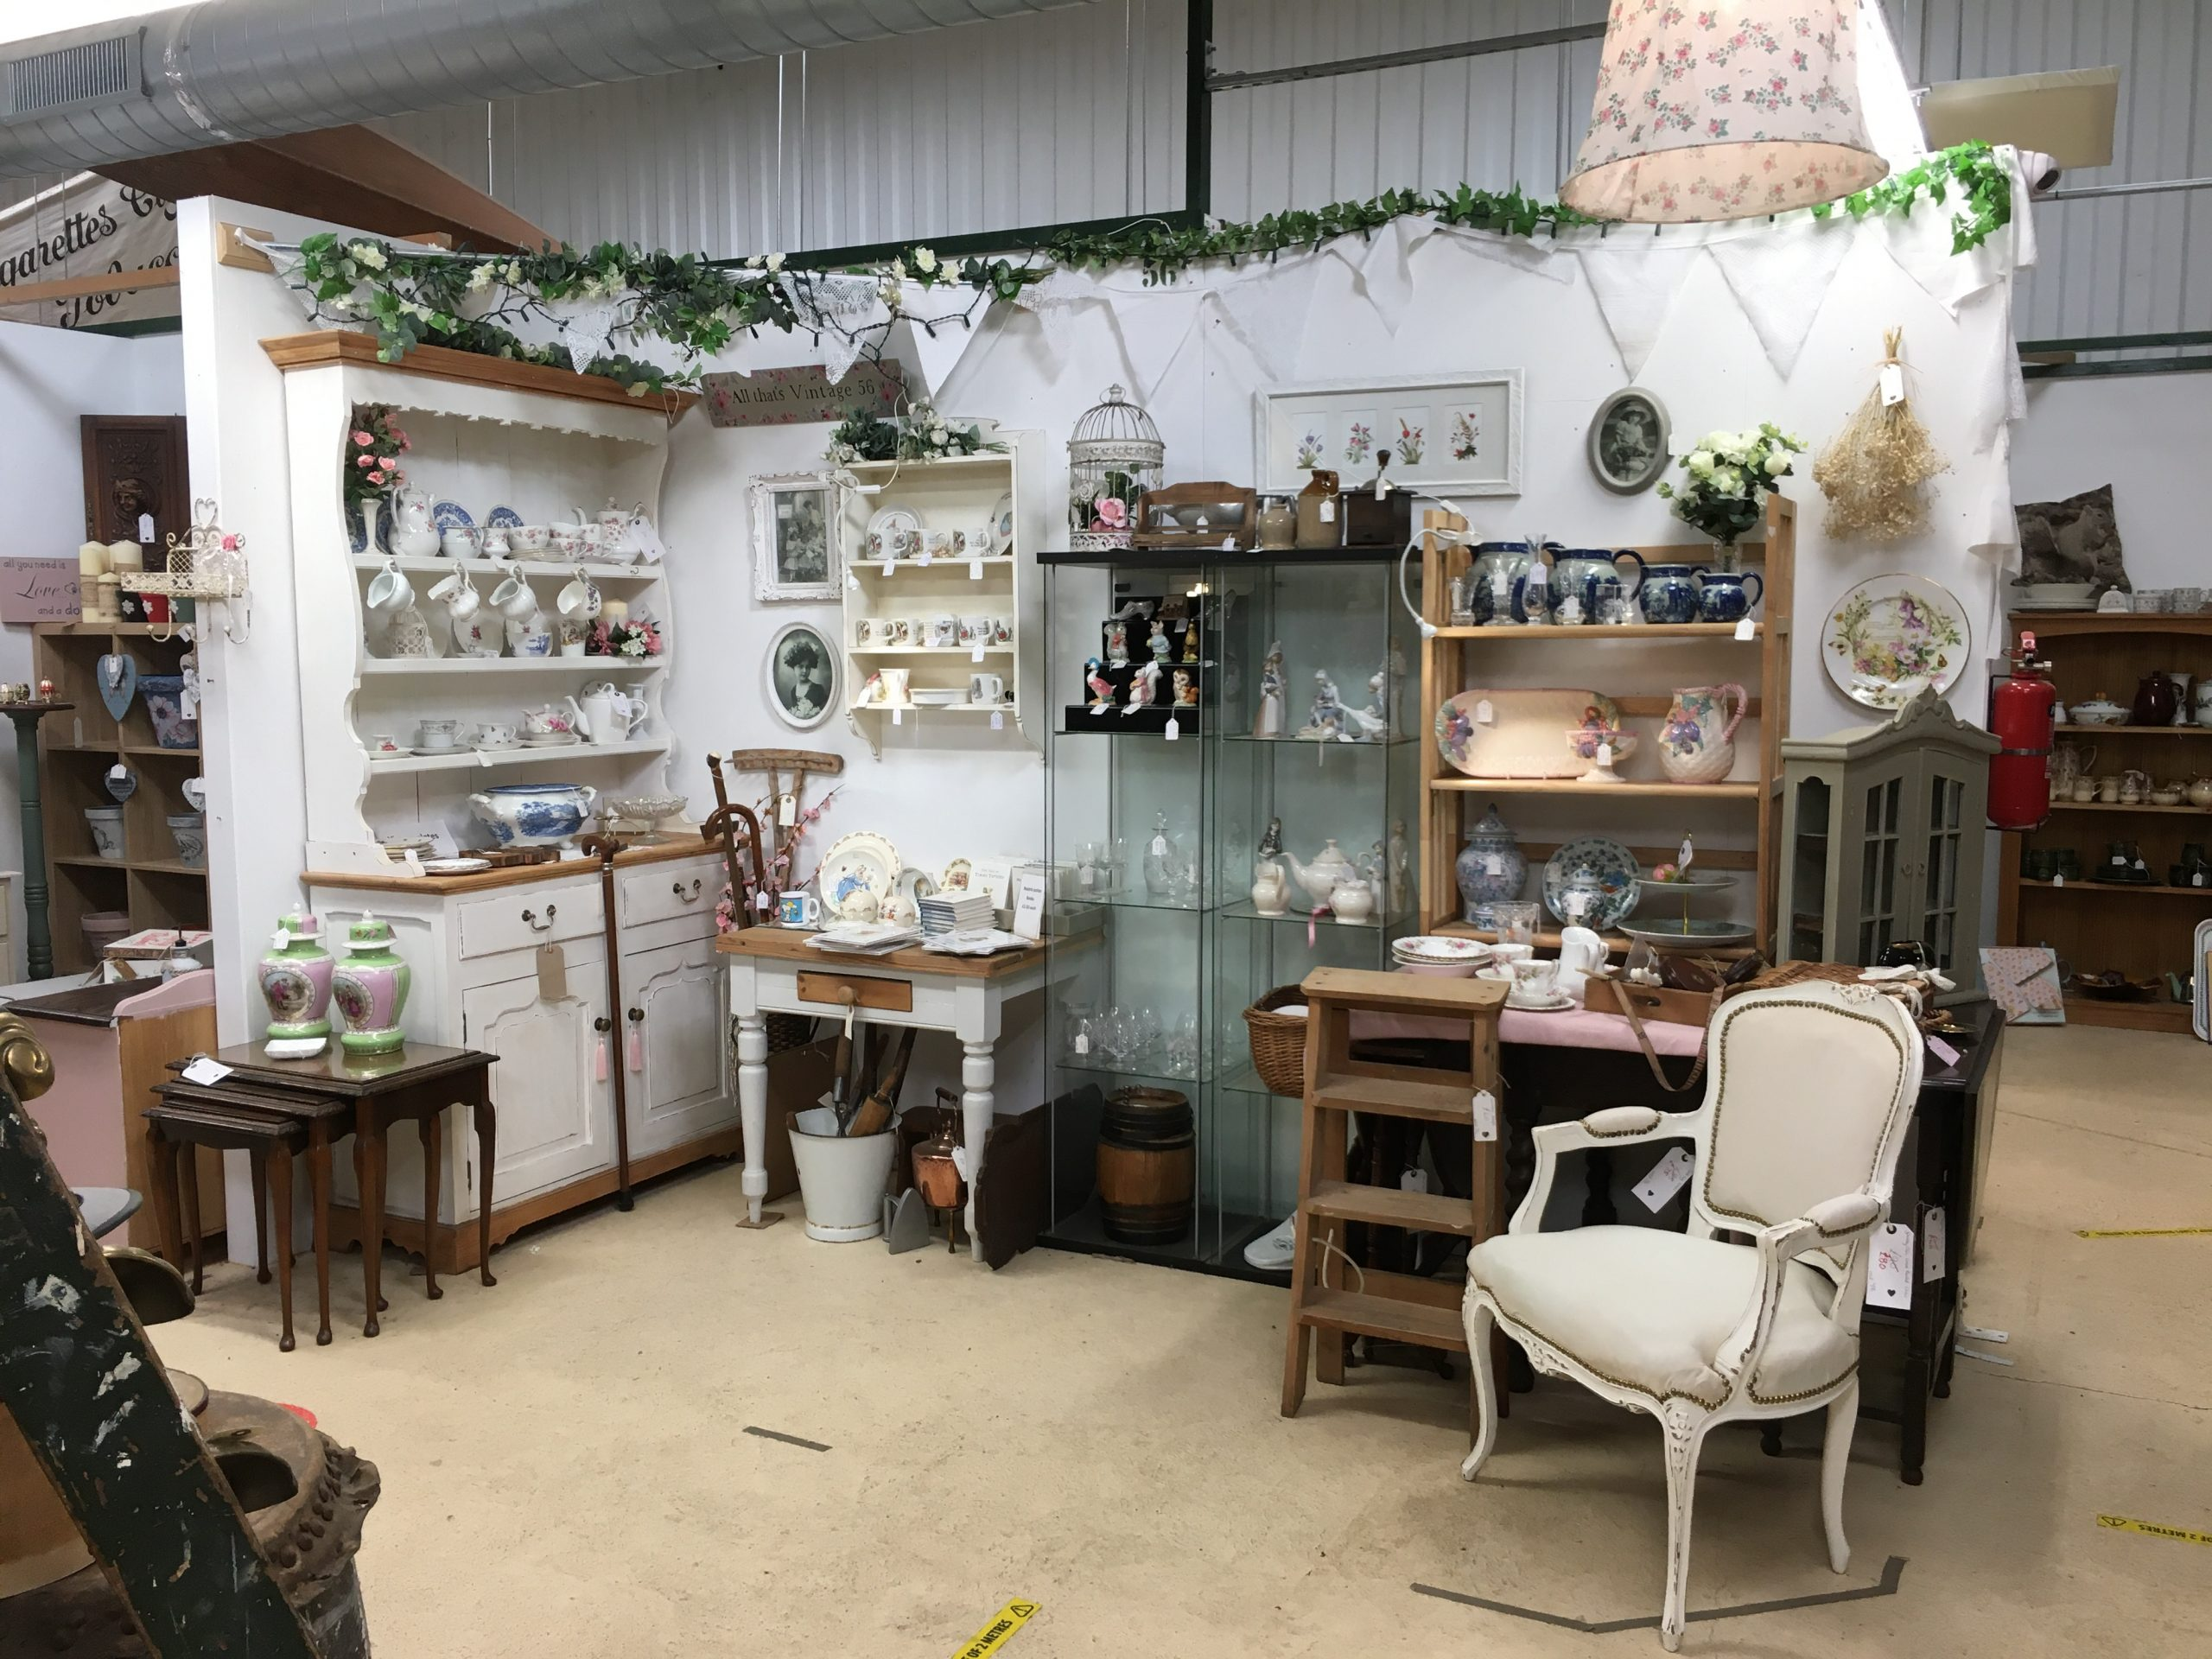 A Trip To Banbury Antiques Centre | October 2020